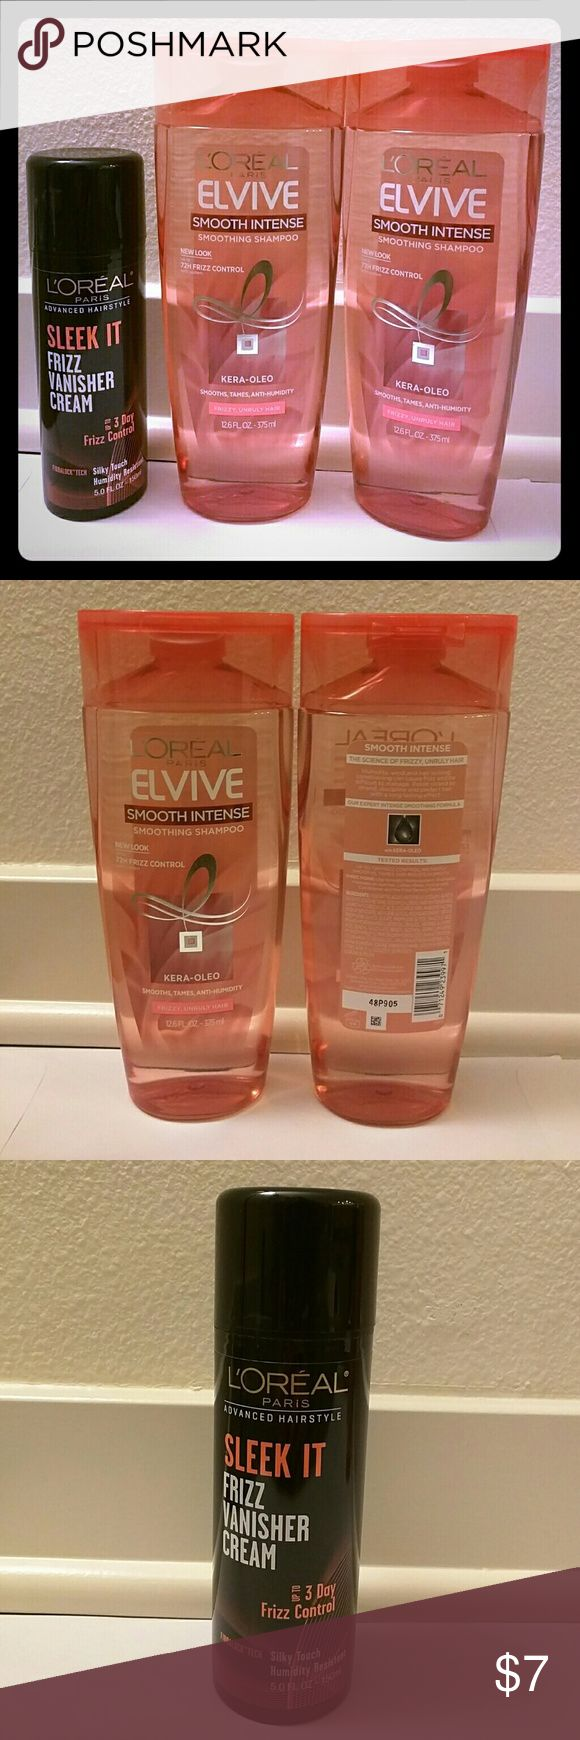 L'oreal Smooth Intense Frizz Control 2 Brand New L'oreal Elvive Smooth Intense Shampoo 12.6 FL OZ/375ml 1 Brand New L'oreal Sleek It Frizz Vanisher Cream 5 FL. OZ/150ml L'Oreal Other